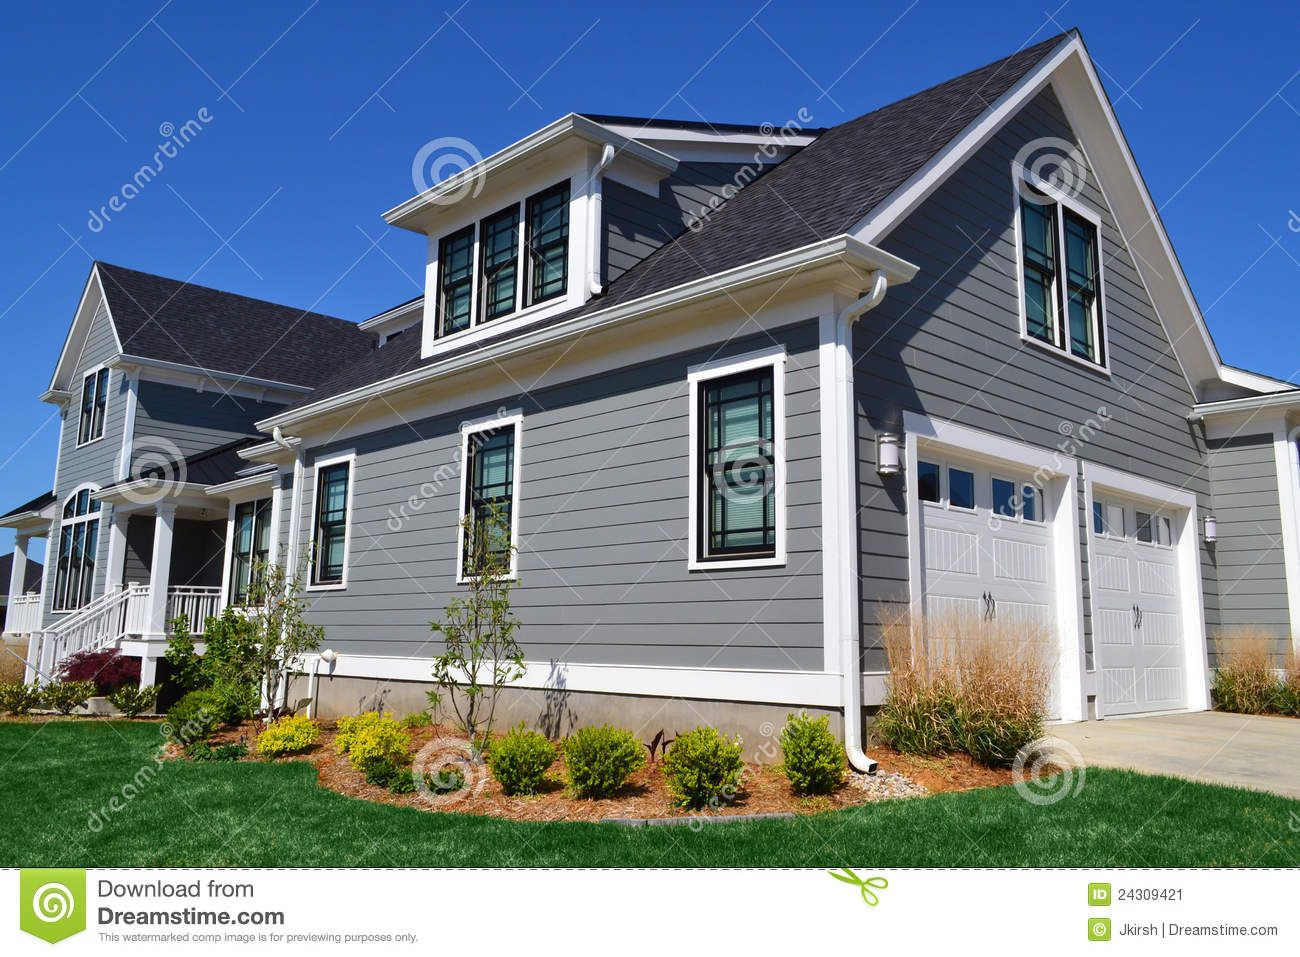 Grey and black cape cod style home stock image image - Maison grise et blanche ...